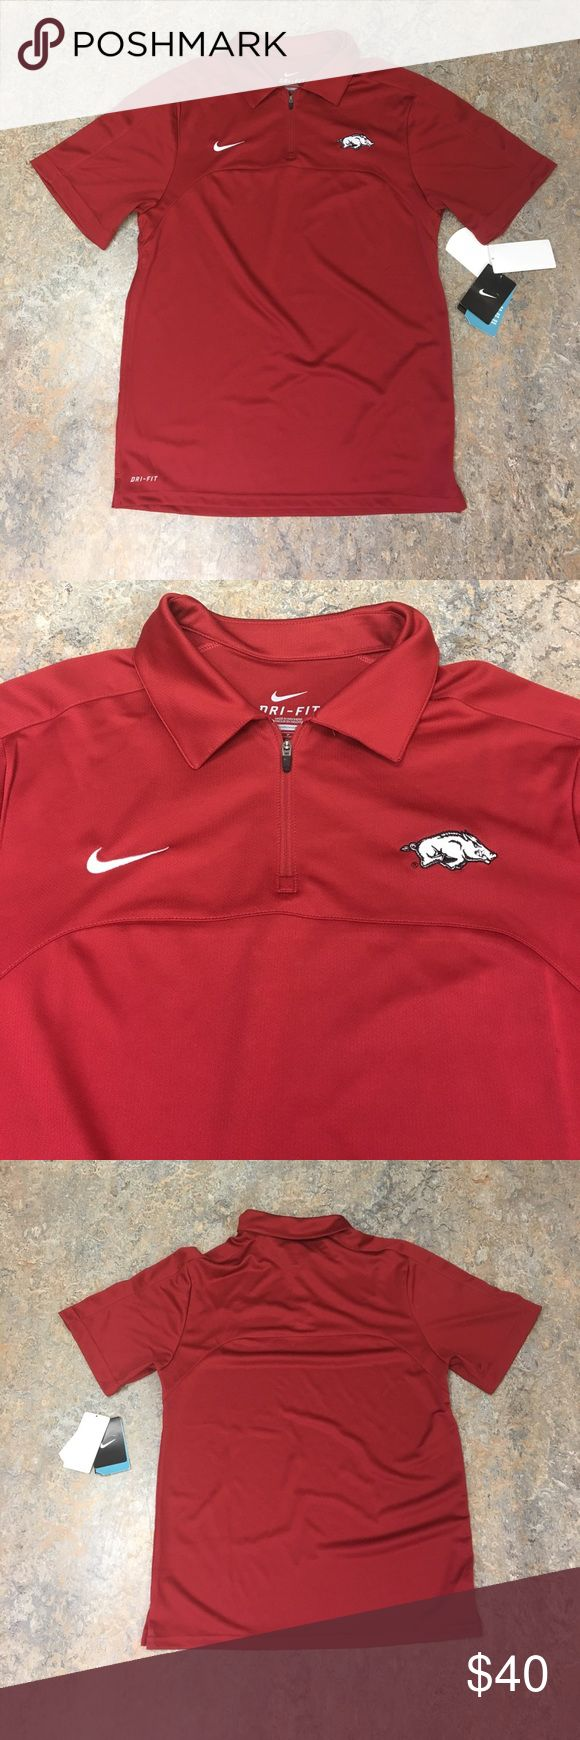 Arkansas Razorbacks Nike Dri Fit Polo Shirt Small Brand new with tags officially licensed Arkansas Razorbacks Nike men's Dri Fit polo shirt size small Nike Shirts Polos